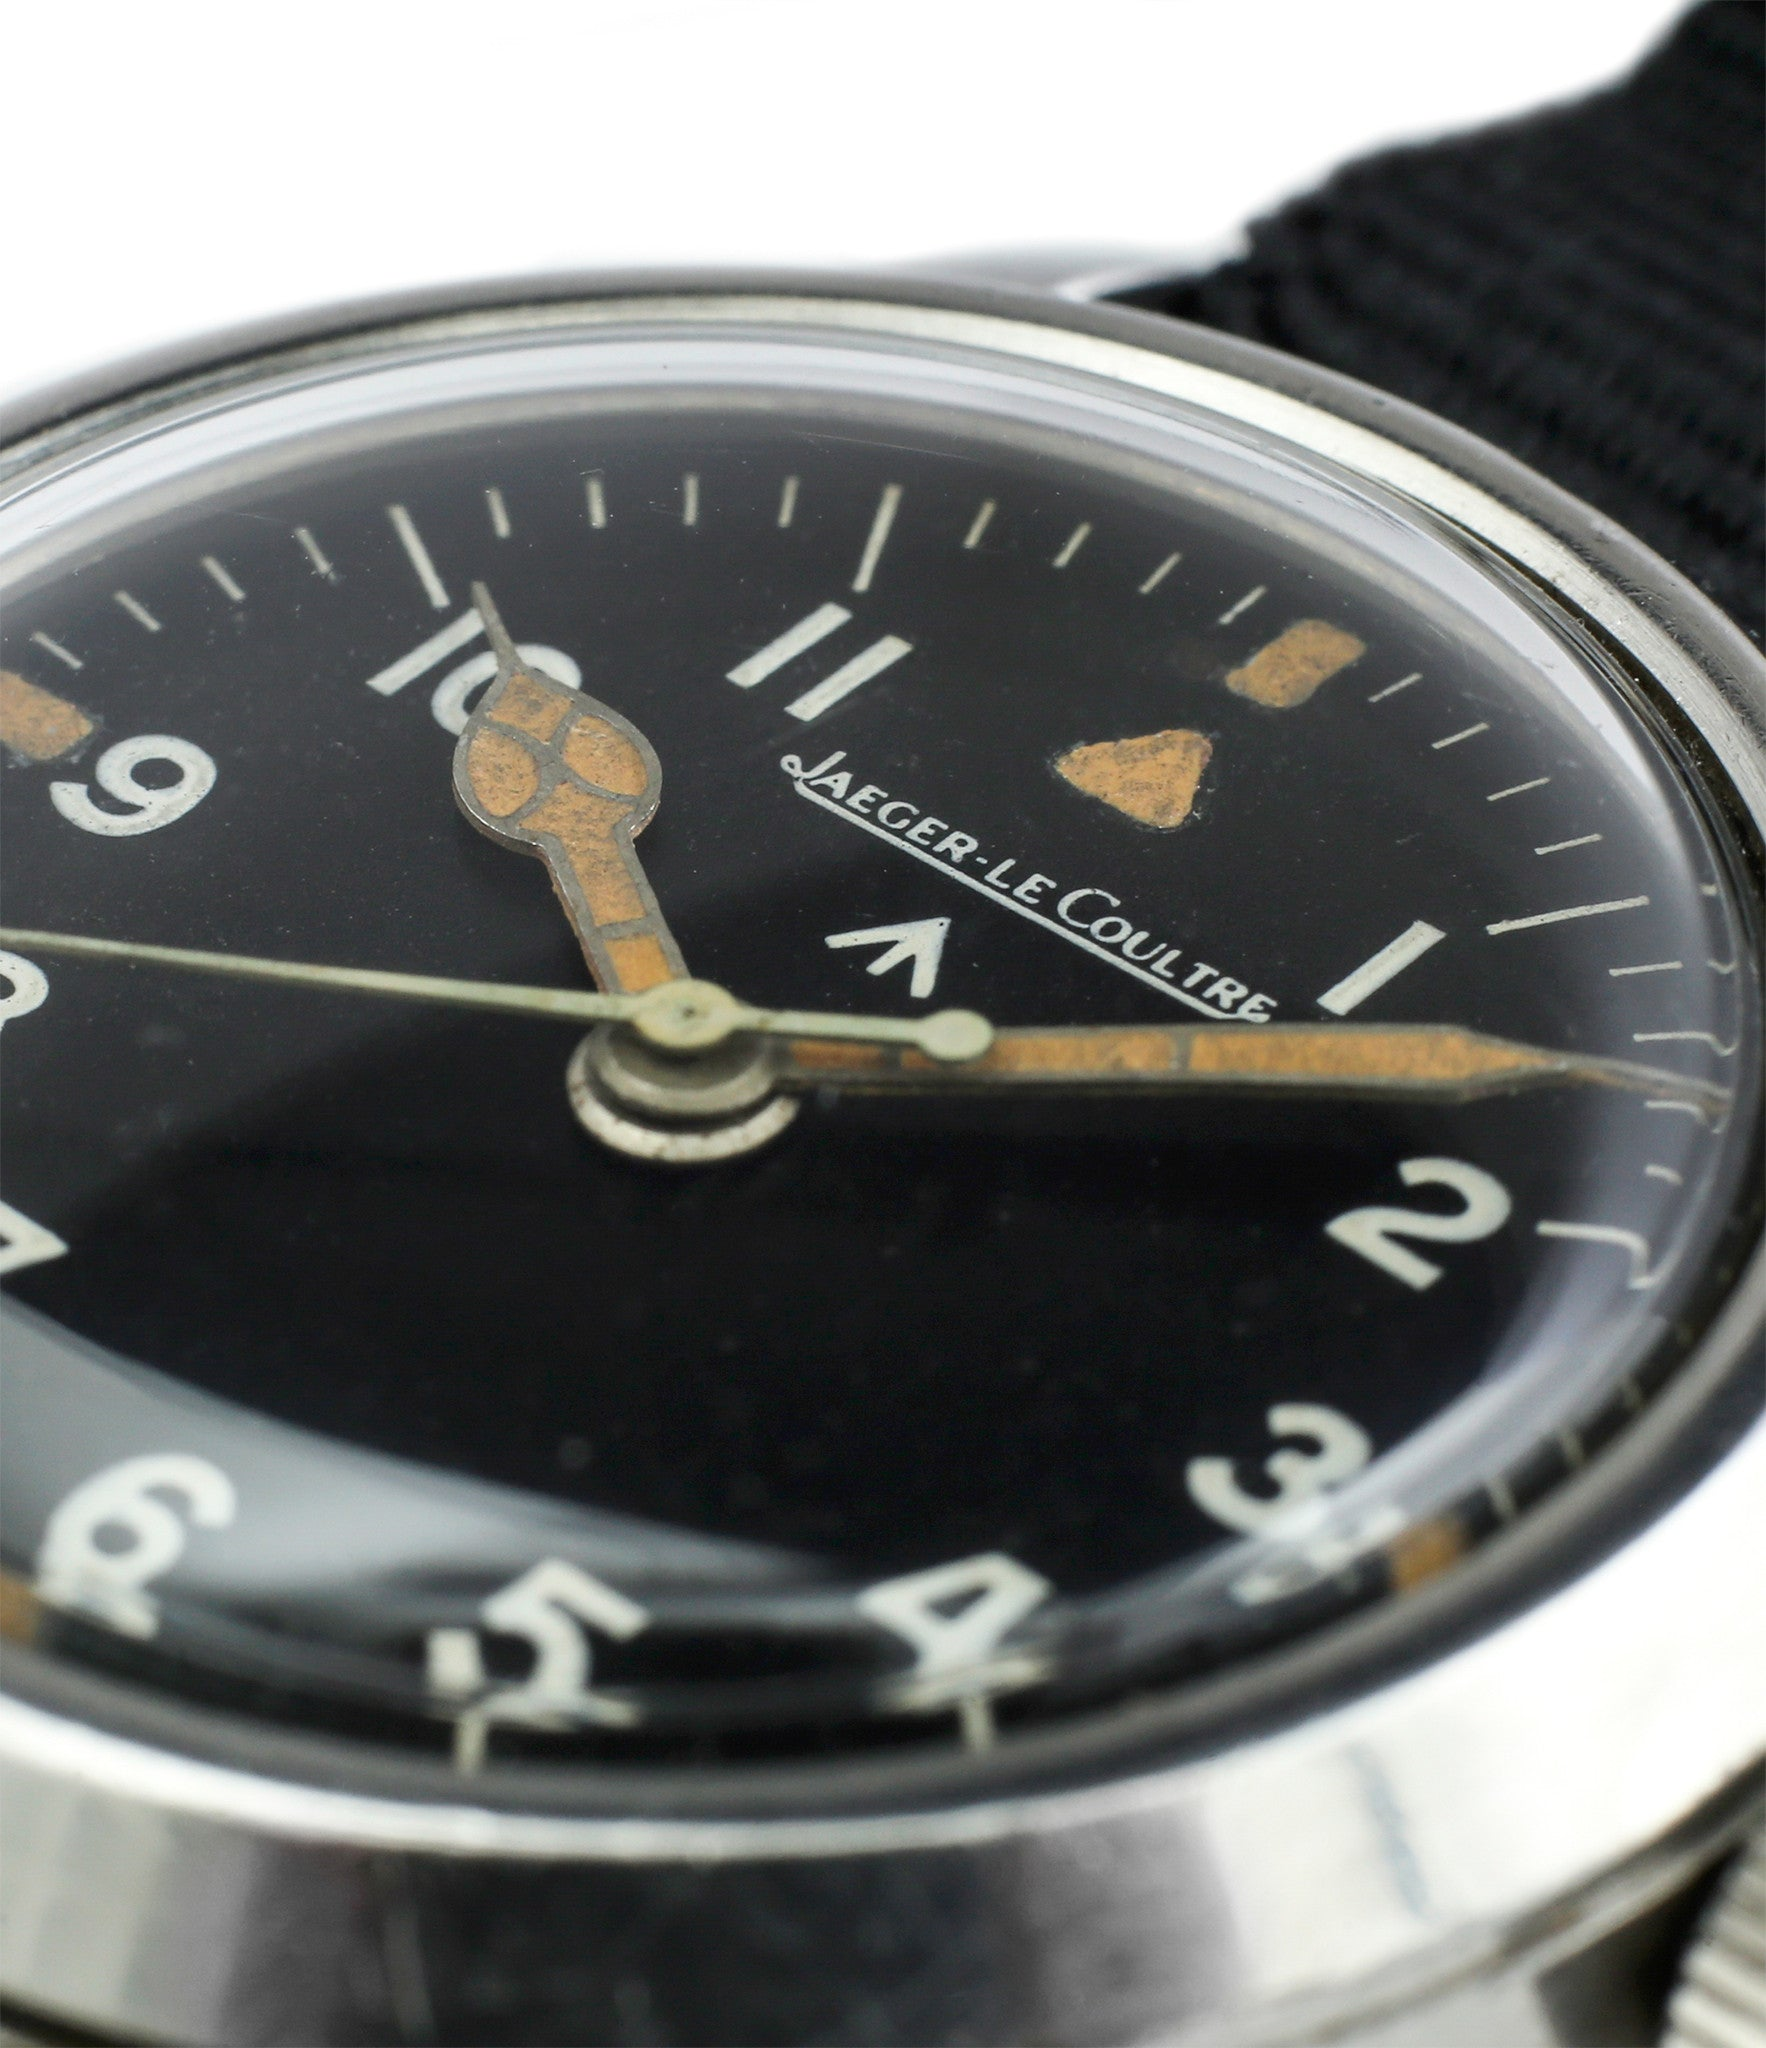 plexiglass dome buy vintage Jaeger-LeCoultre Mark XI RAF military pilot watch 6B/346 unrestored dial cathedral hands at WATCH XCHANGE LONDON military watch online specialist